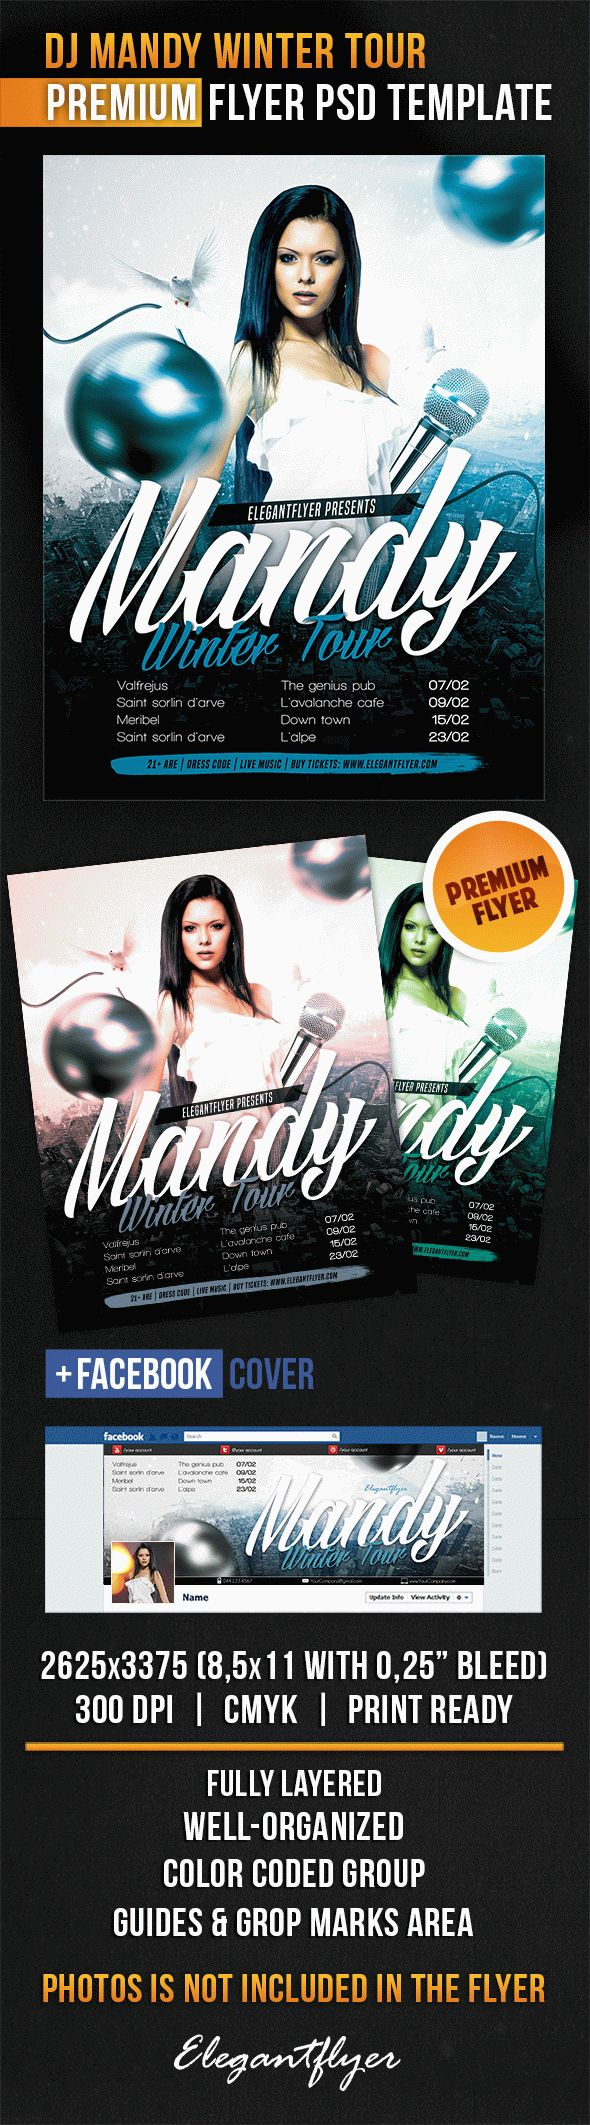 DJ Mandy Winter Tour – Flyer PSD Template + Facebook Cover